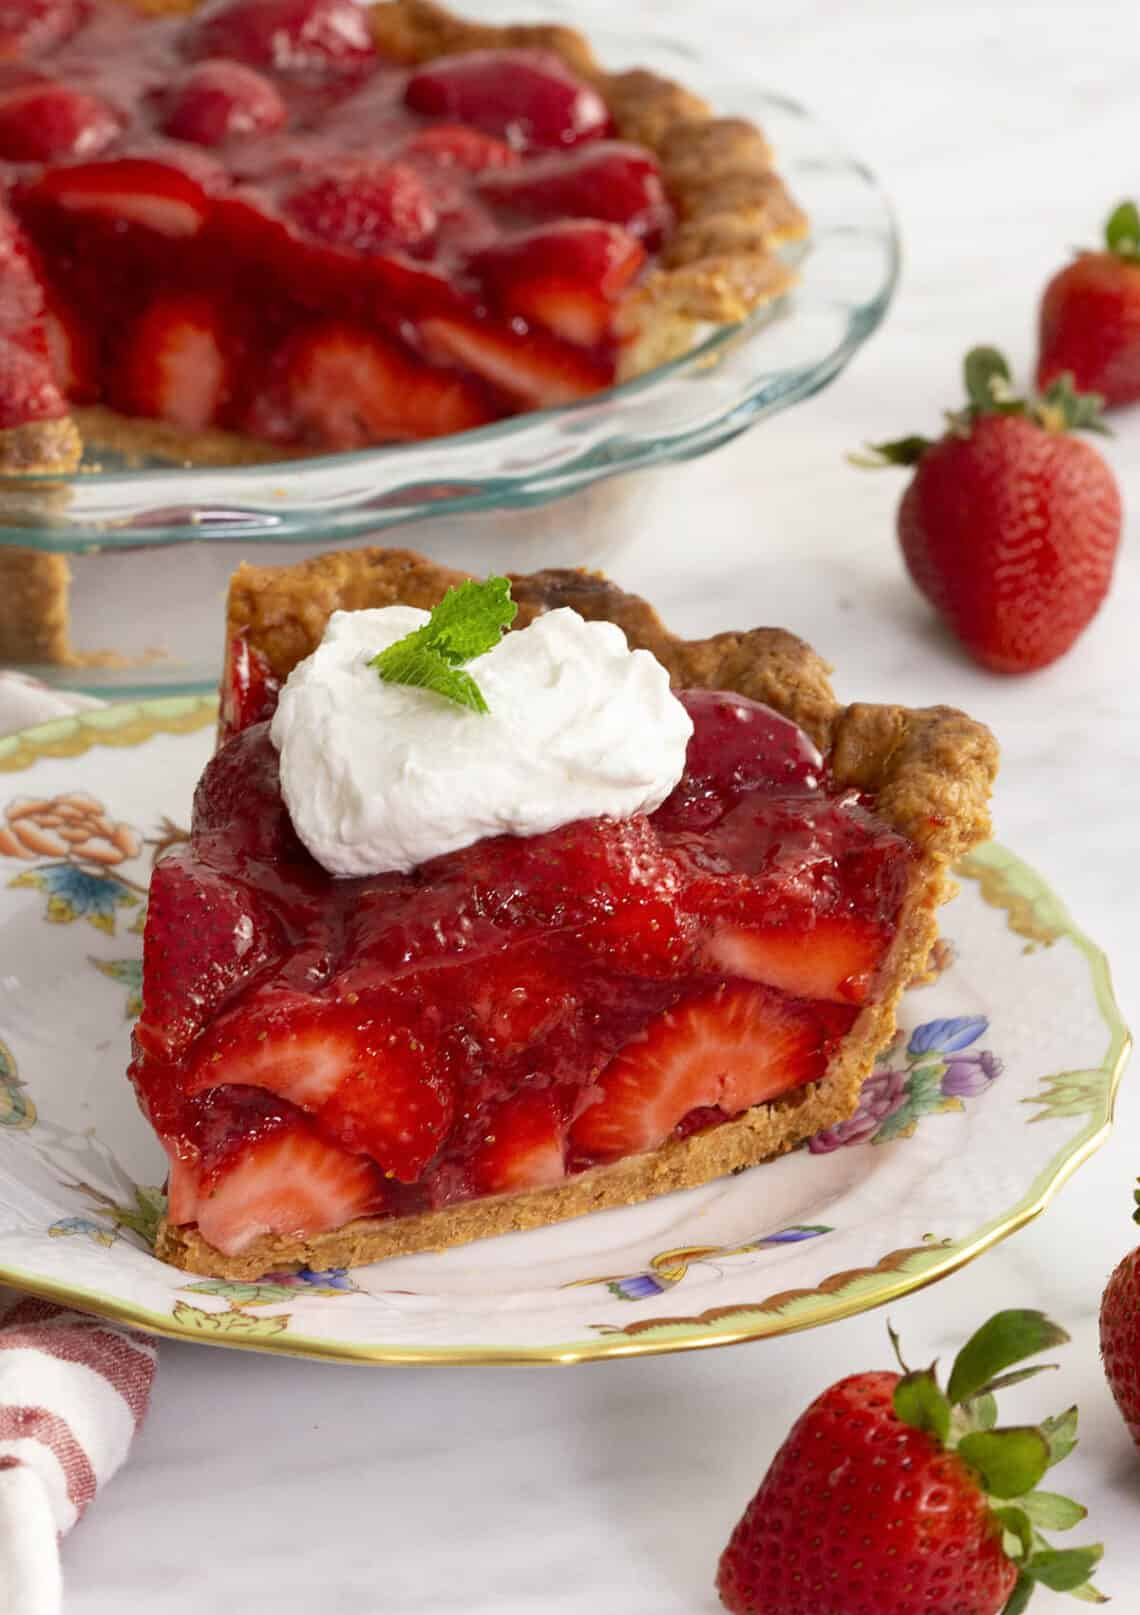 A piece of strawberry pie on a porcelain plate.